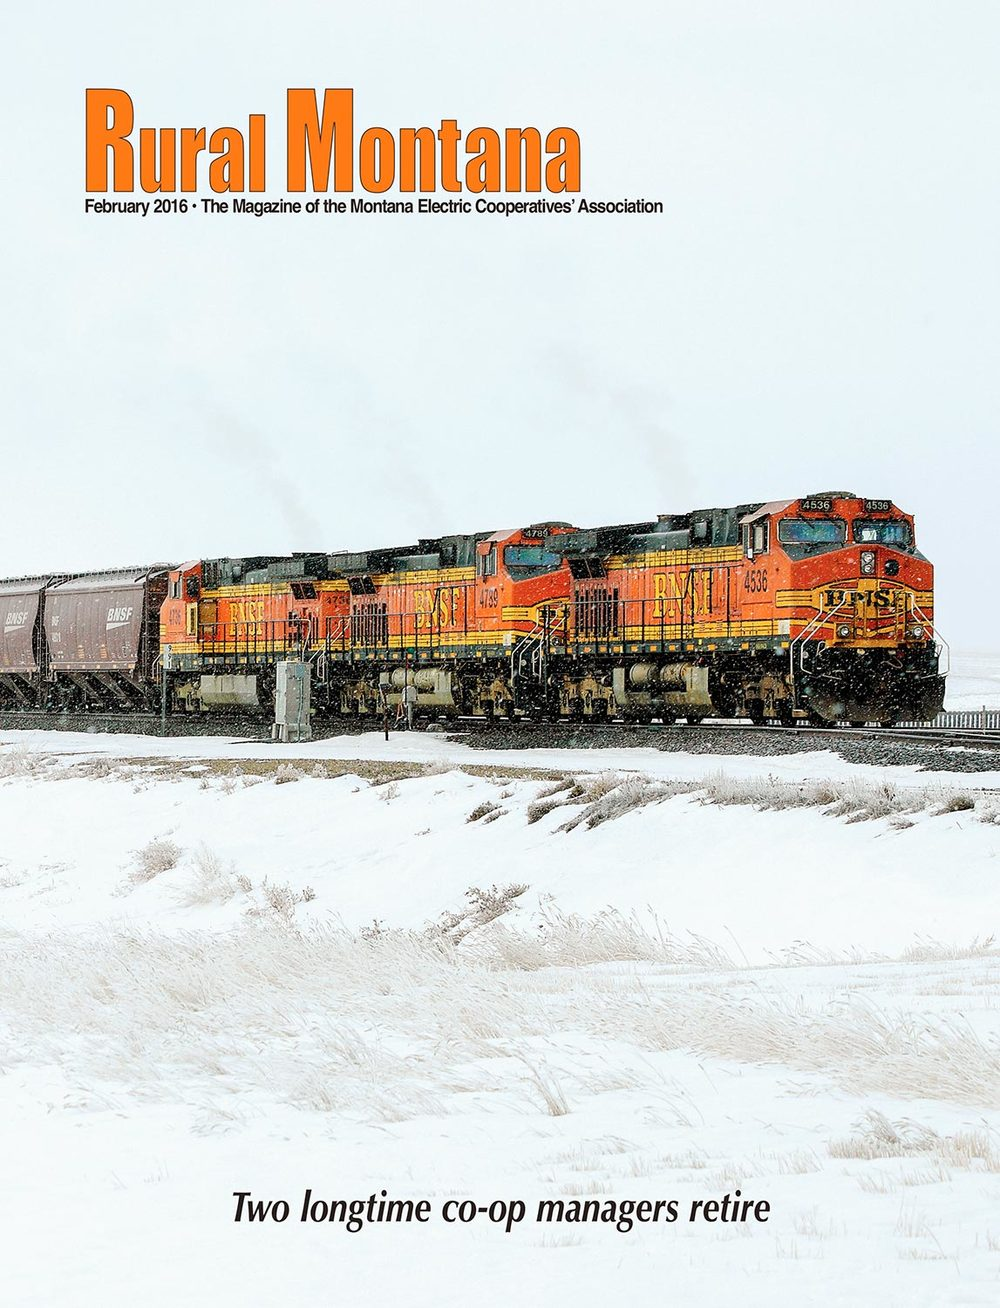 My photo of a train chugging through Rudyard, Montana appears on the cover of the February 2016 issue of Rural Montana magazine. → Buy a Print